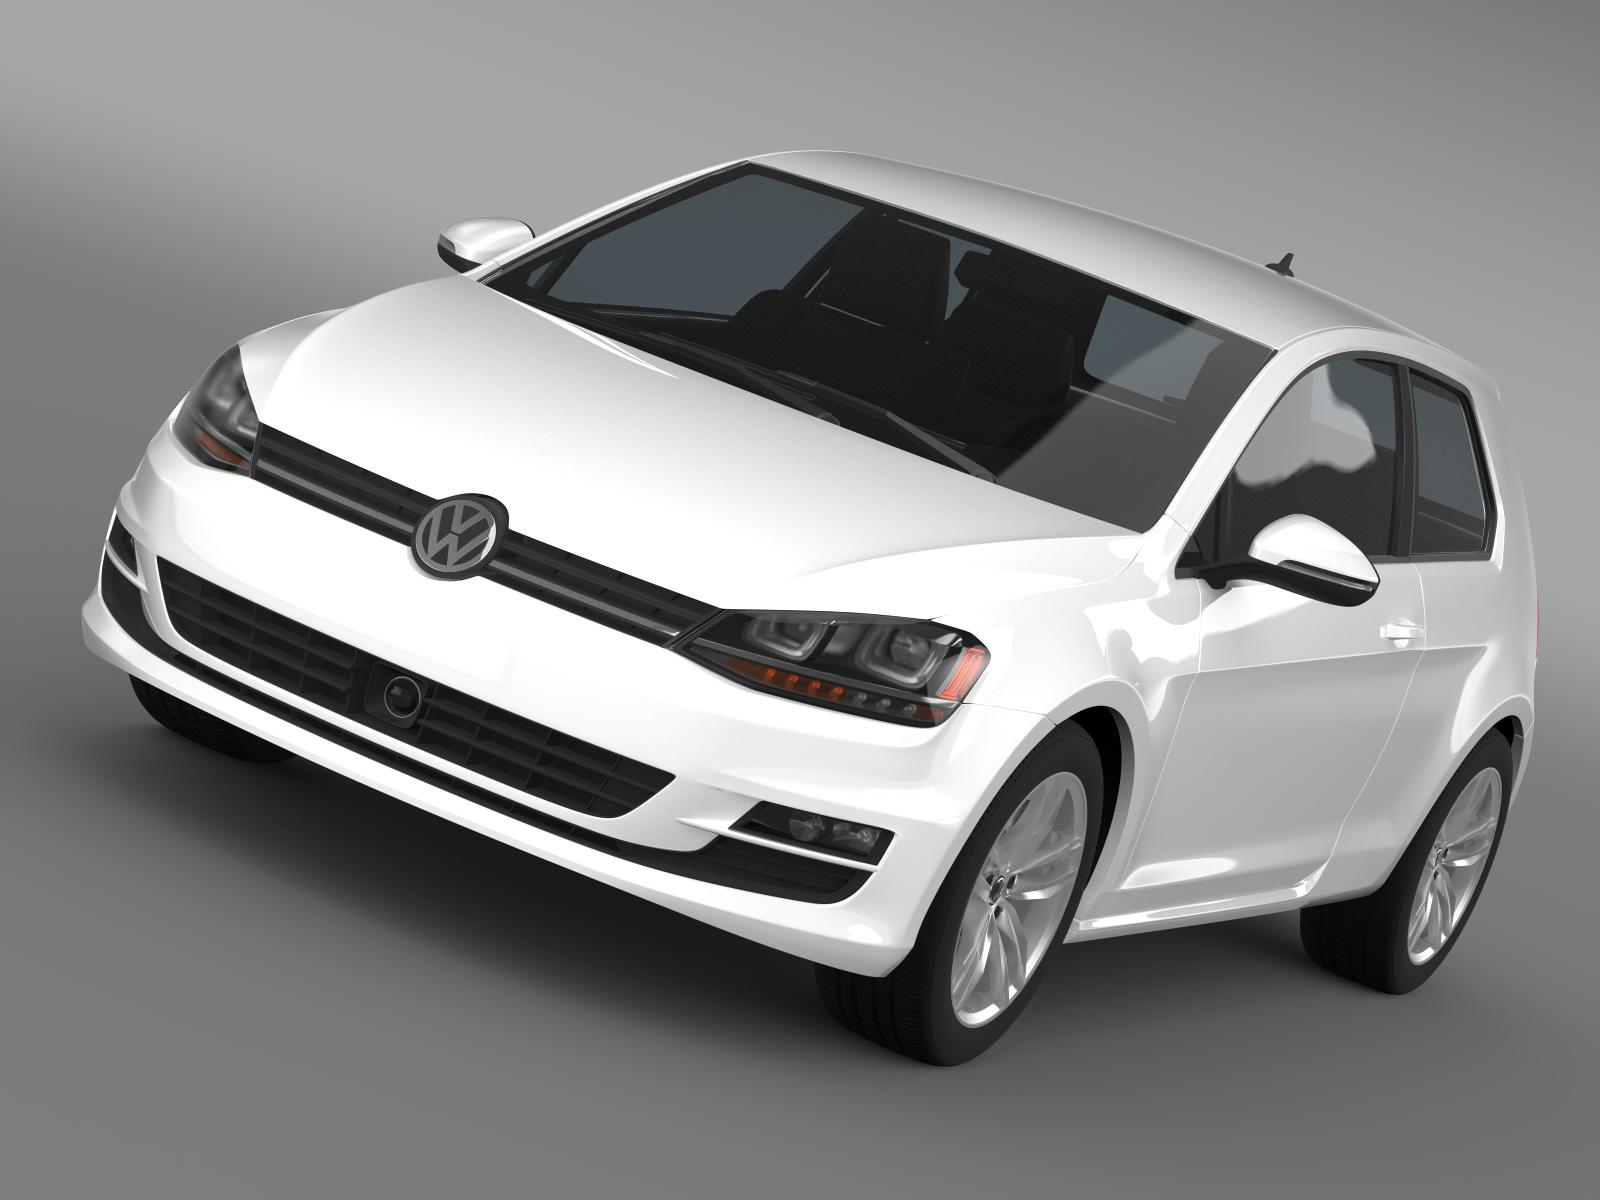 vw golf tsi bluemotion 3door 2015 3d model 3ds max fbx c4d lwo ma mb hrc xsi obj 207757